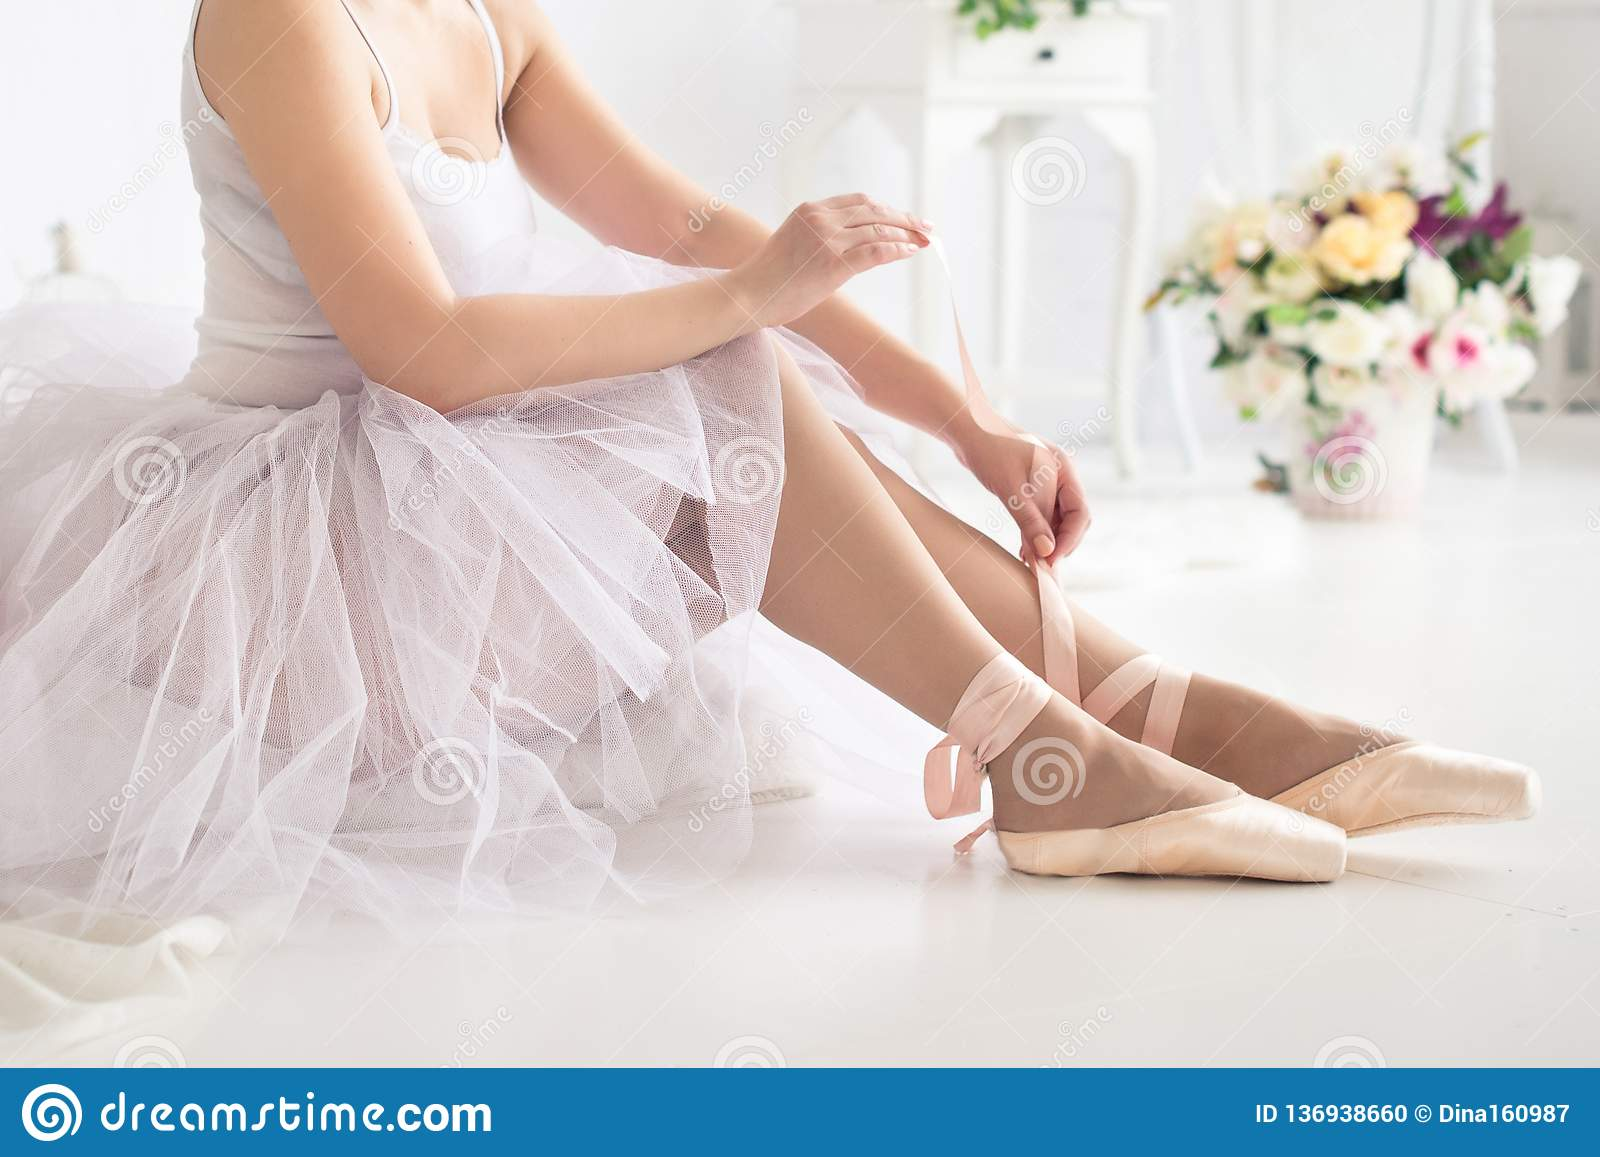 Ballerina tying pointe ballet shoes. Close up